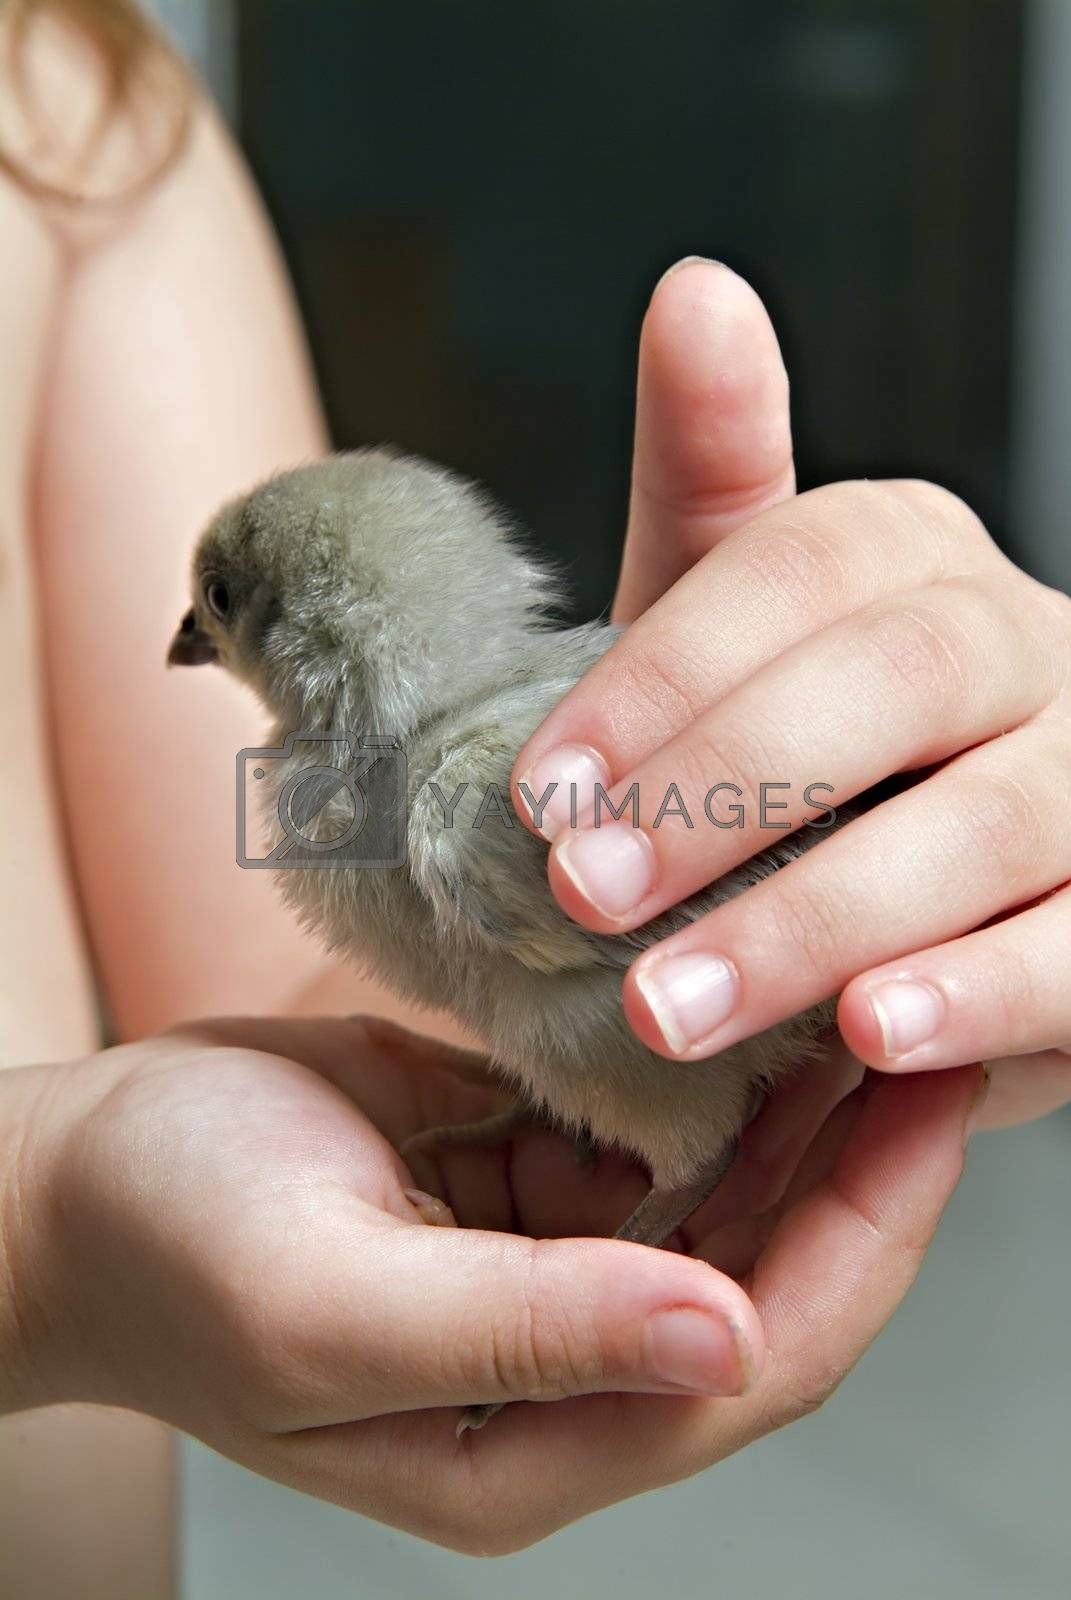 chick in child hand by noam